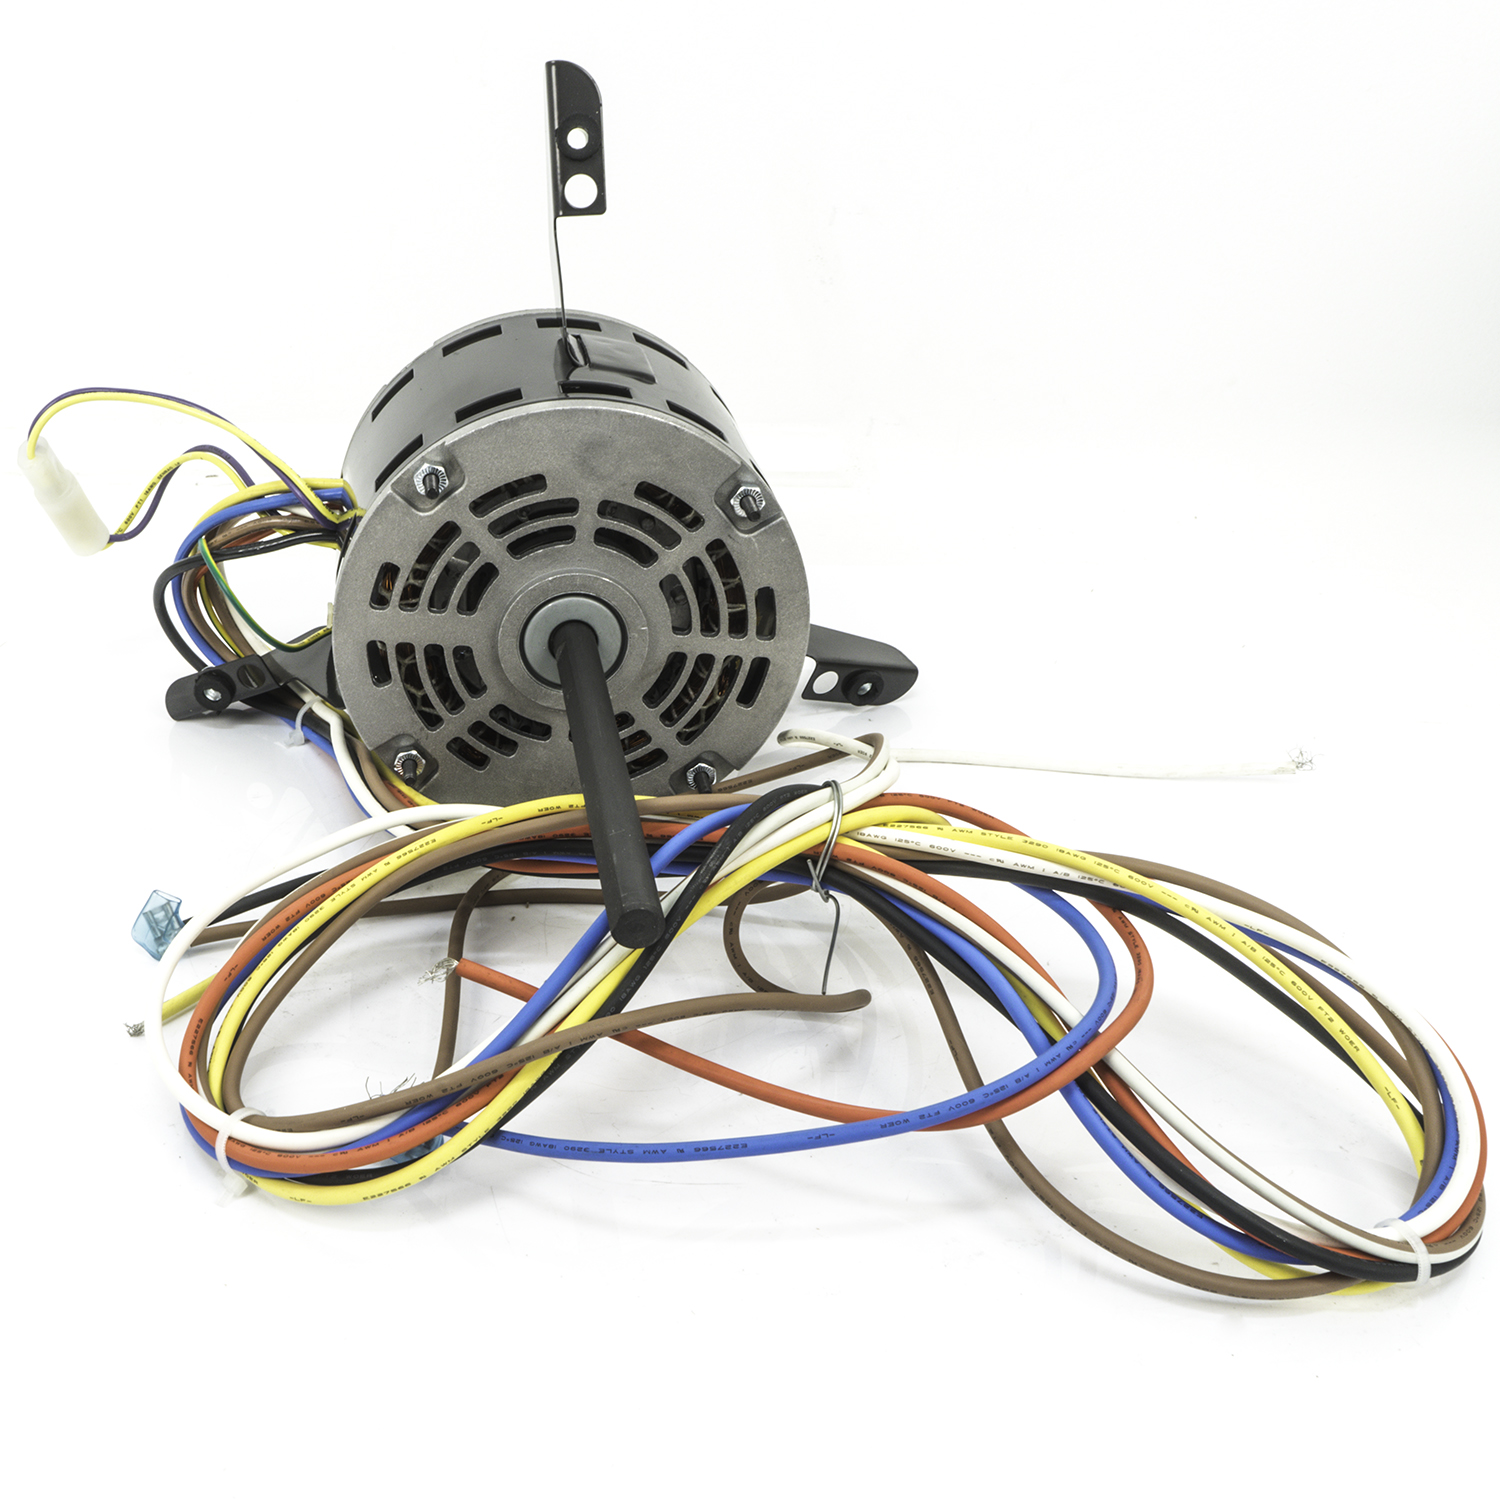 hight resolution of torsion flex direct drive blower motor 1 4 hp 208 230 volt 1075 rpm packard online